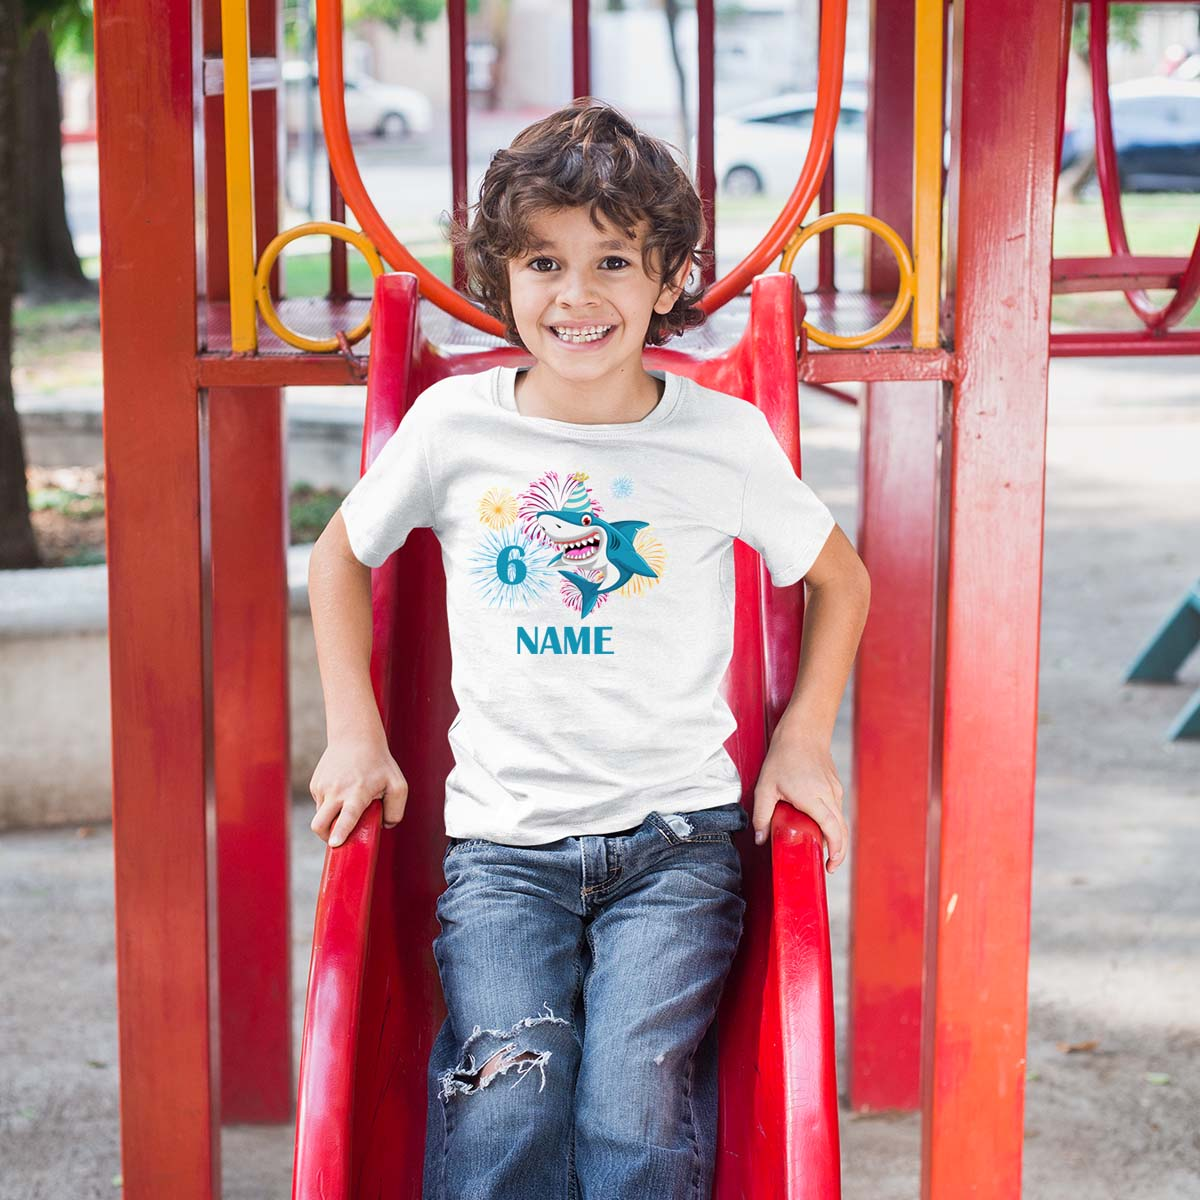 Sprinklecart Shark Birthday T Shirt | Customized 6th Birthday T Shirt for Your Little One